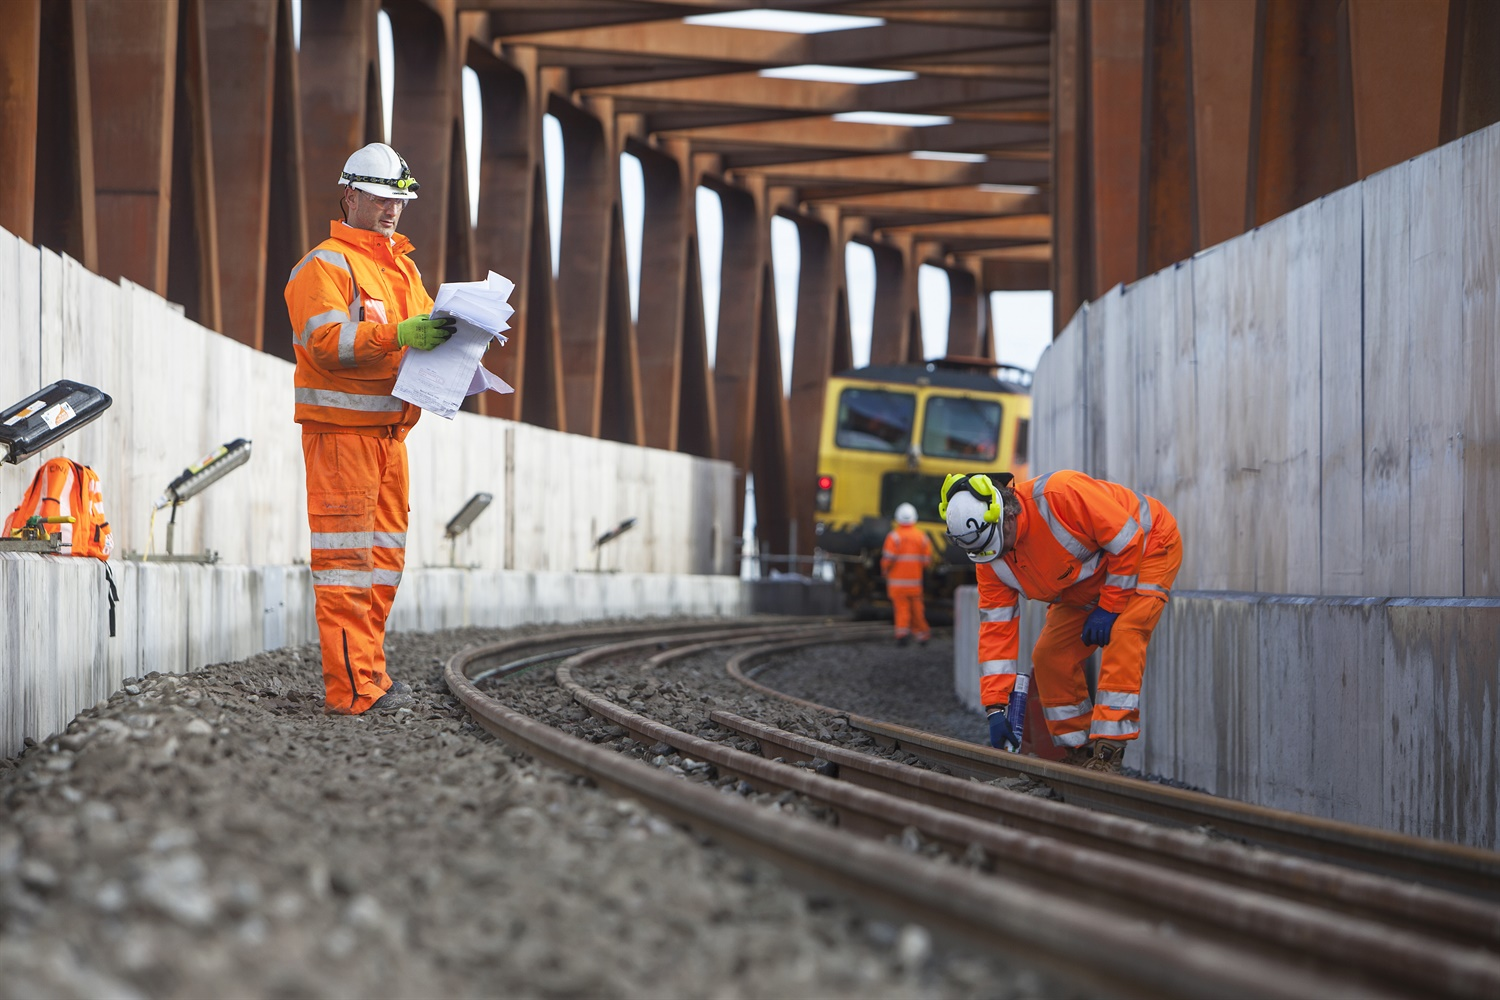 Major rail schemes push workers' pay up by 74% since 2012